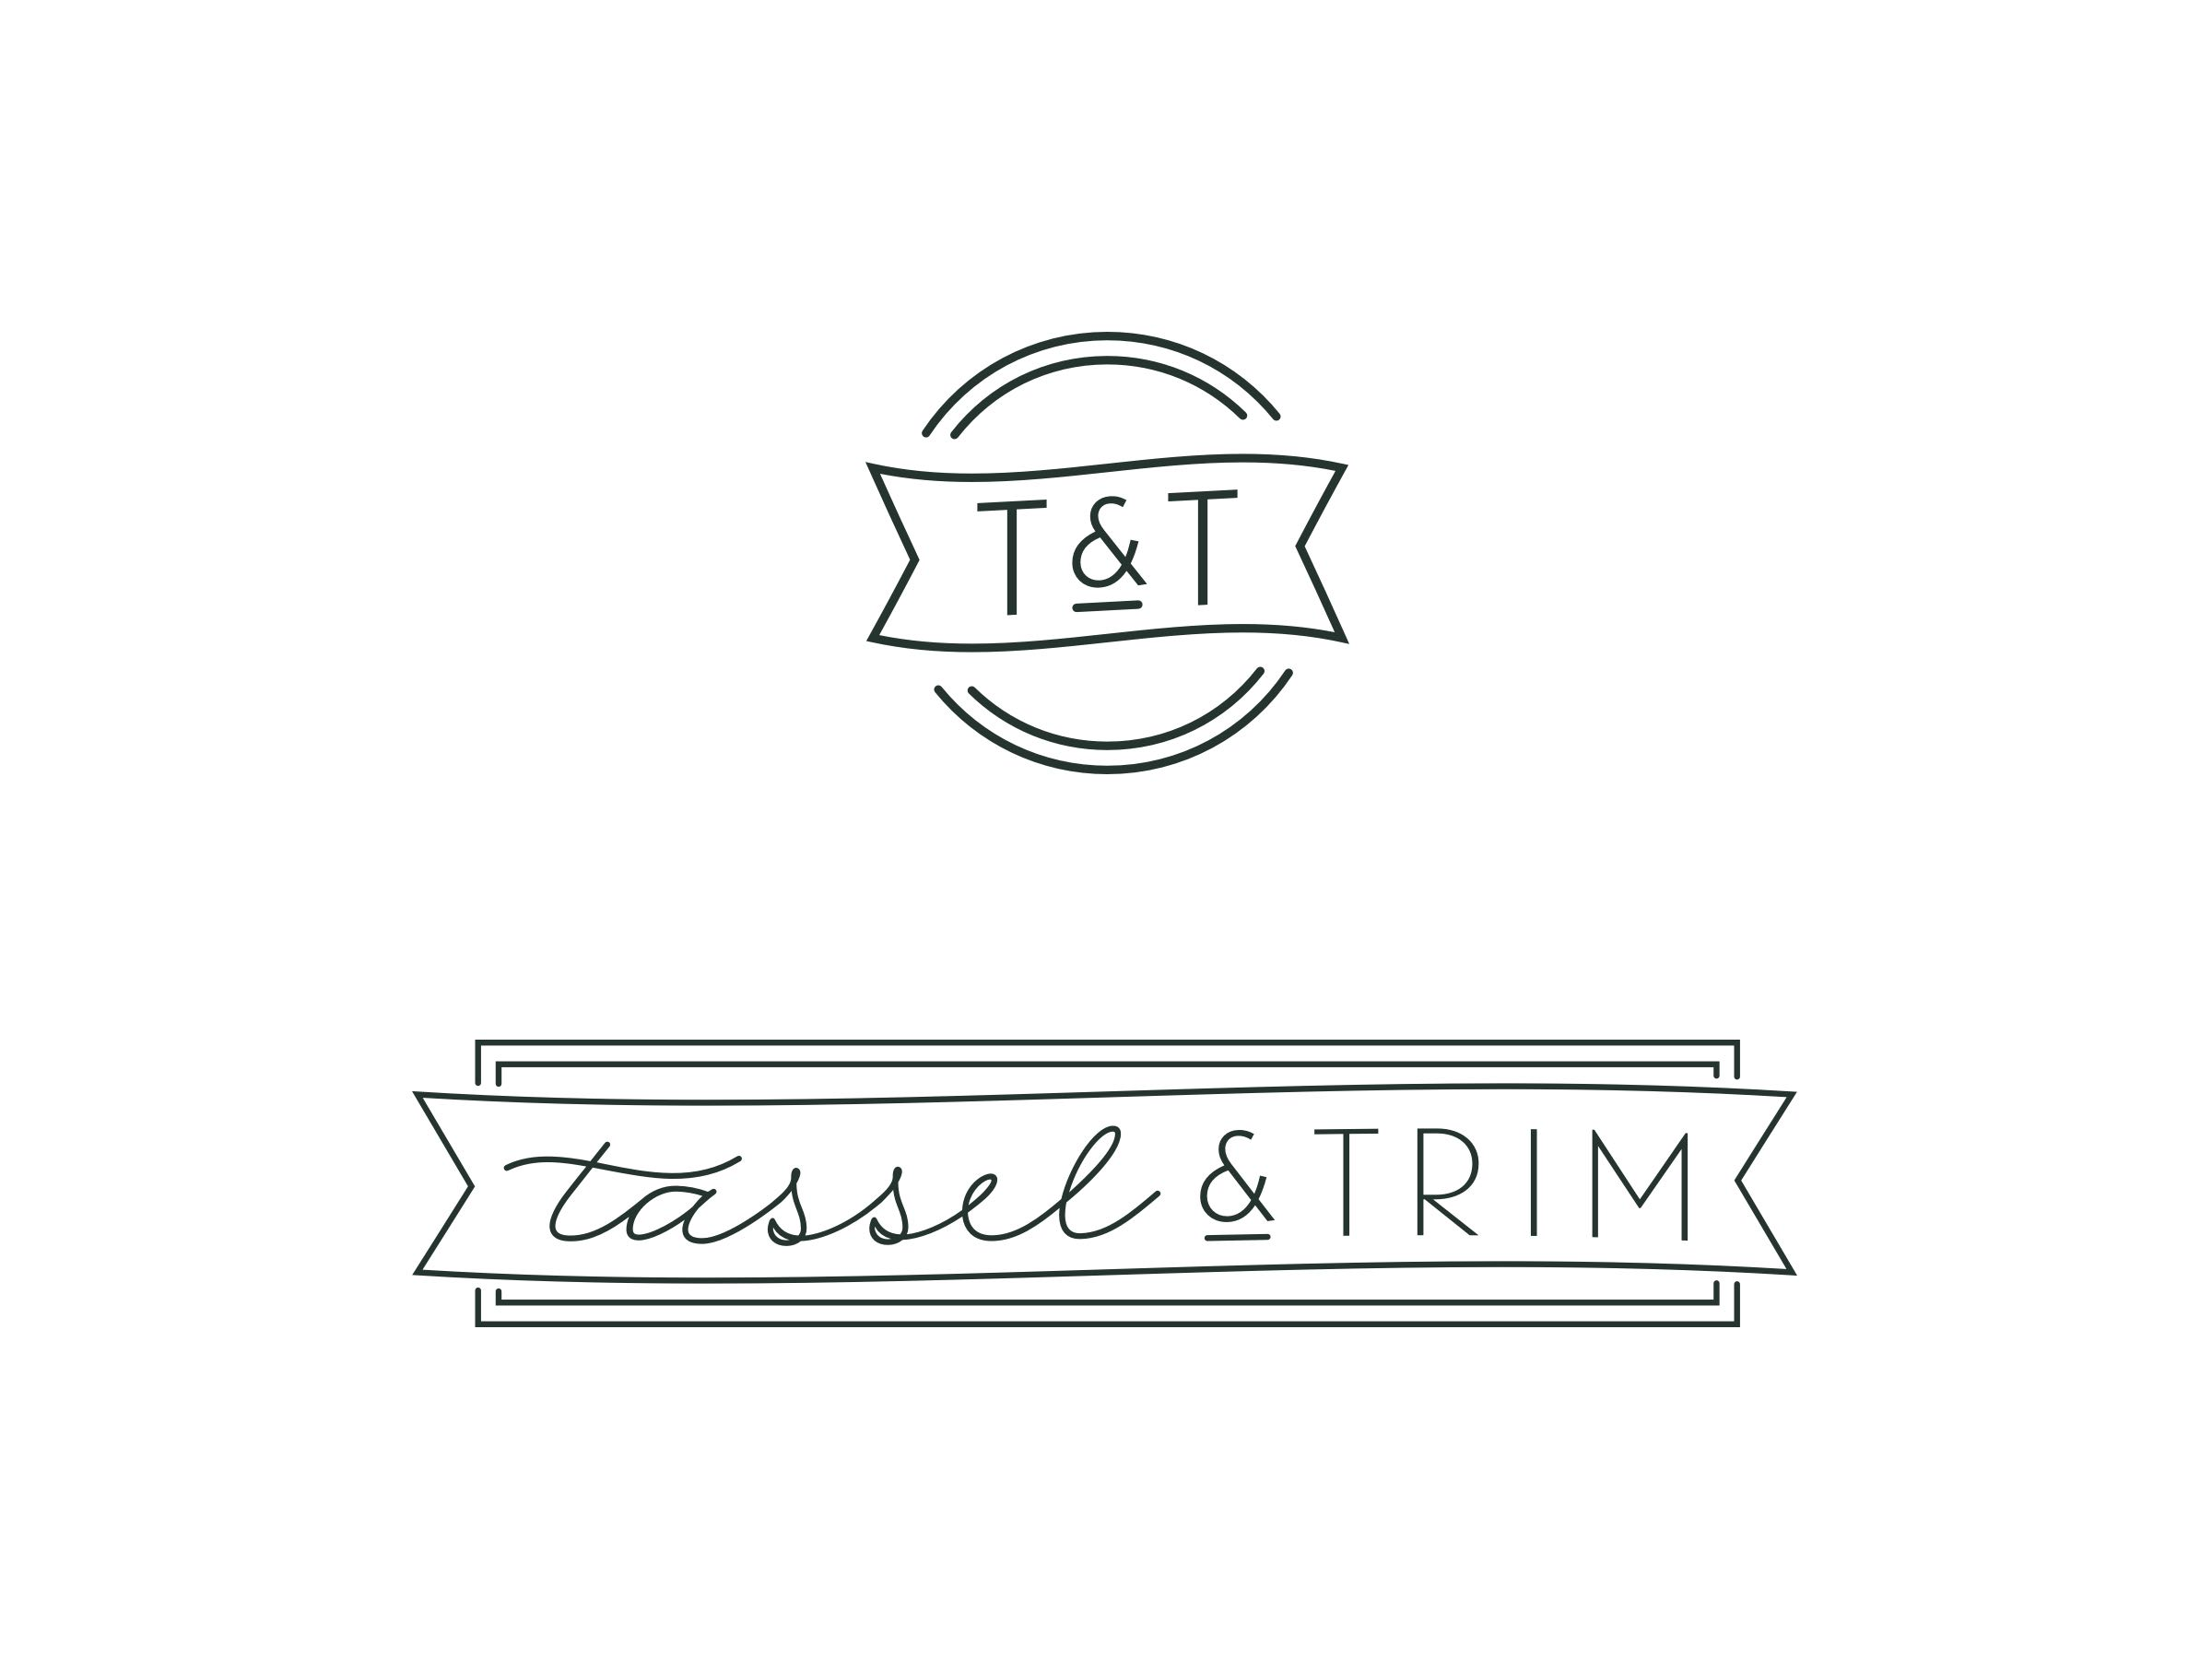 Tassel & Trim visual identity